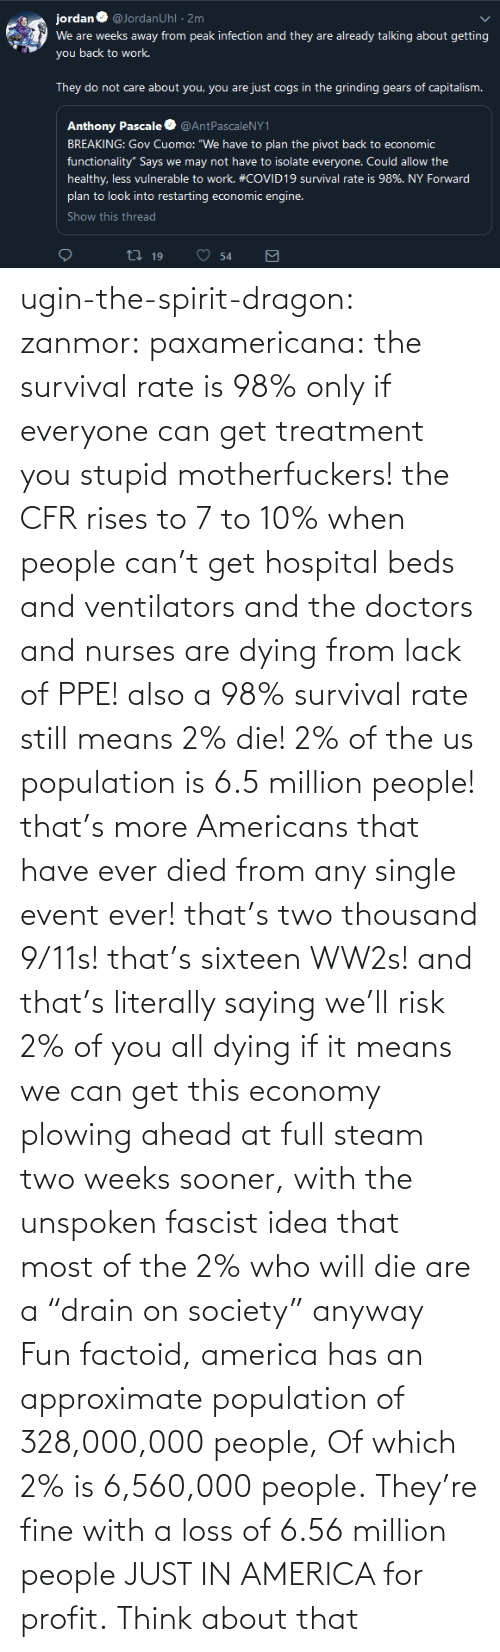 "risk: ugin-the-spirit-dragon: zanmor:   paxamericana:  the survival rate is 98% only if everyone can get treatment you stupid motherfuckers! the CFR rises to 7 to 10% when people can't get hospital beds and ventilators and the doctors and nurses are dying from lack of PPE!  also a 98% survival rate still means 2% die! 2% of the us population is 6.5 million people! that's more Americans that have ever died from any single event ever! that's two thousand 9/11s! that's sixteen WW2s!  and that's literally saying we'll risk 2% of you all dying if it means we can get this economy plowing ahead at full steam two weeks sooner, with the unspoken fascist idea that most of the 2% who will die are a ""drain on society"" anyway    Fun factoid, america has an approximate population of 328,000,000 people,  Of which 2% is 6,560,000 people. They're fine with a loss of 6.56 million people JUST IN AMERICA for profit. Think about that"